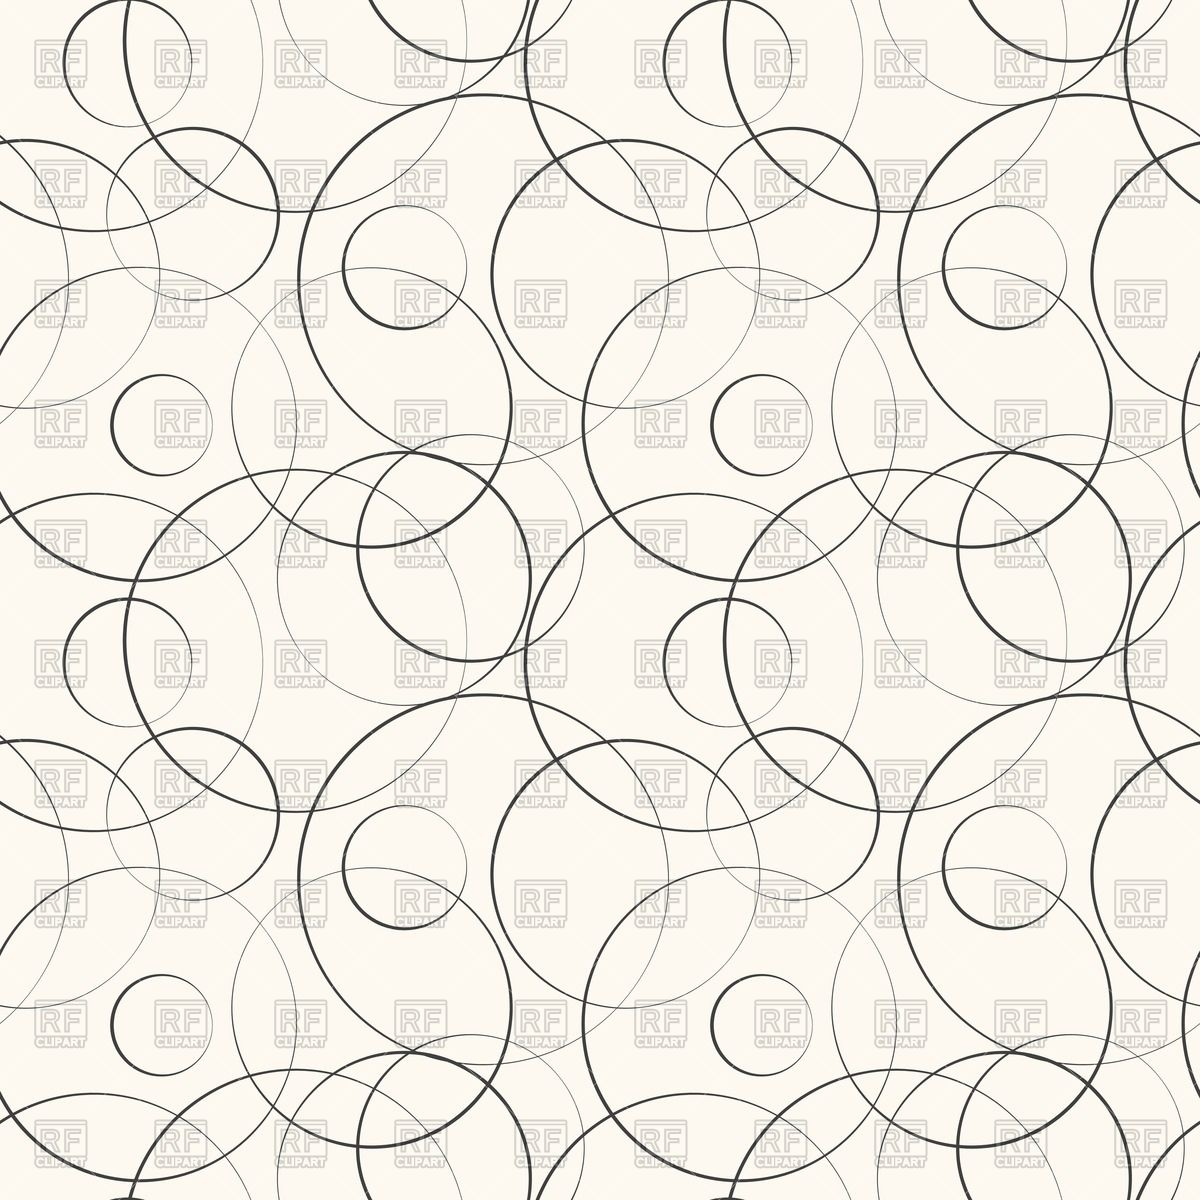 1200x1200 Abstract Geometric Pattern With Curved Lines And Circles Royalty